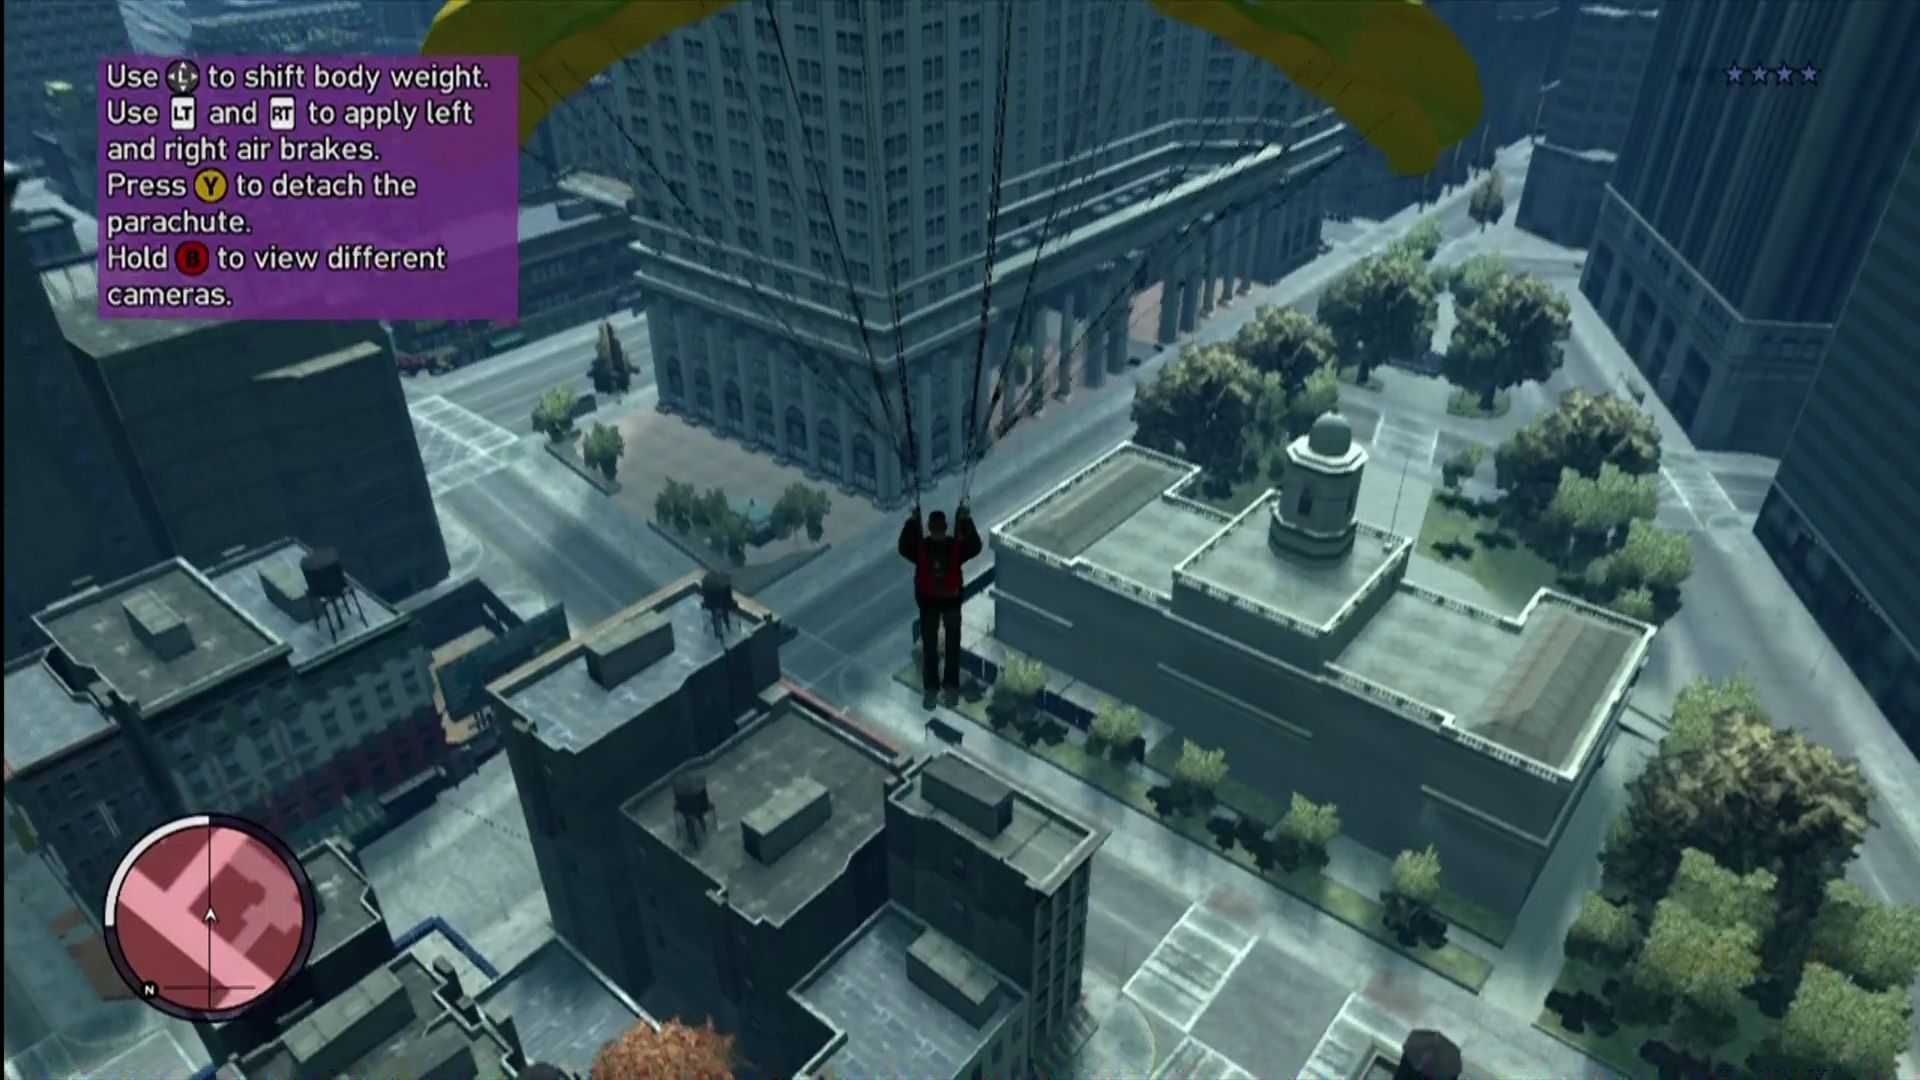 Grand Theft Auto: The Ballad of Gay Tony Xbox 360 The extra height allows for base jumping and parachuting.